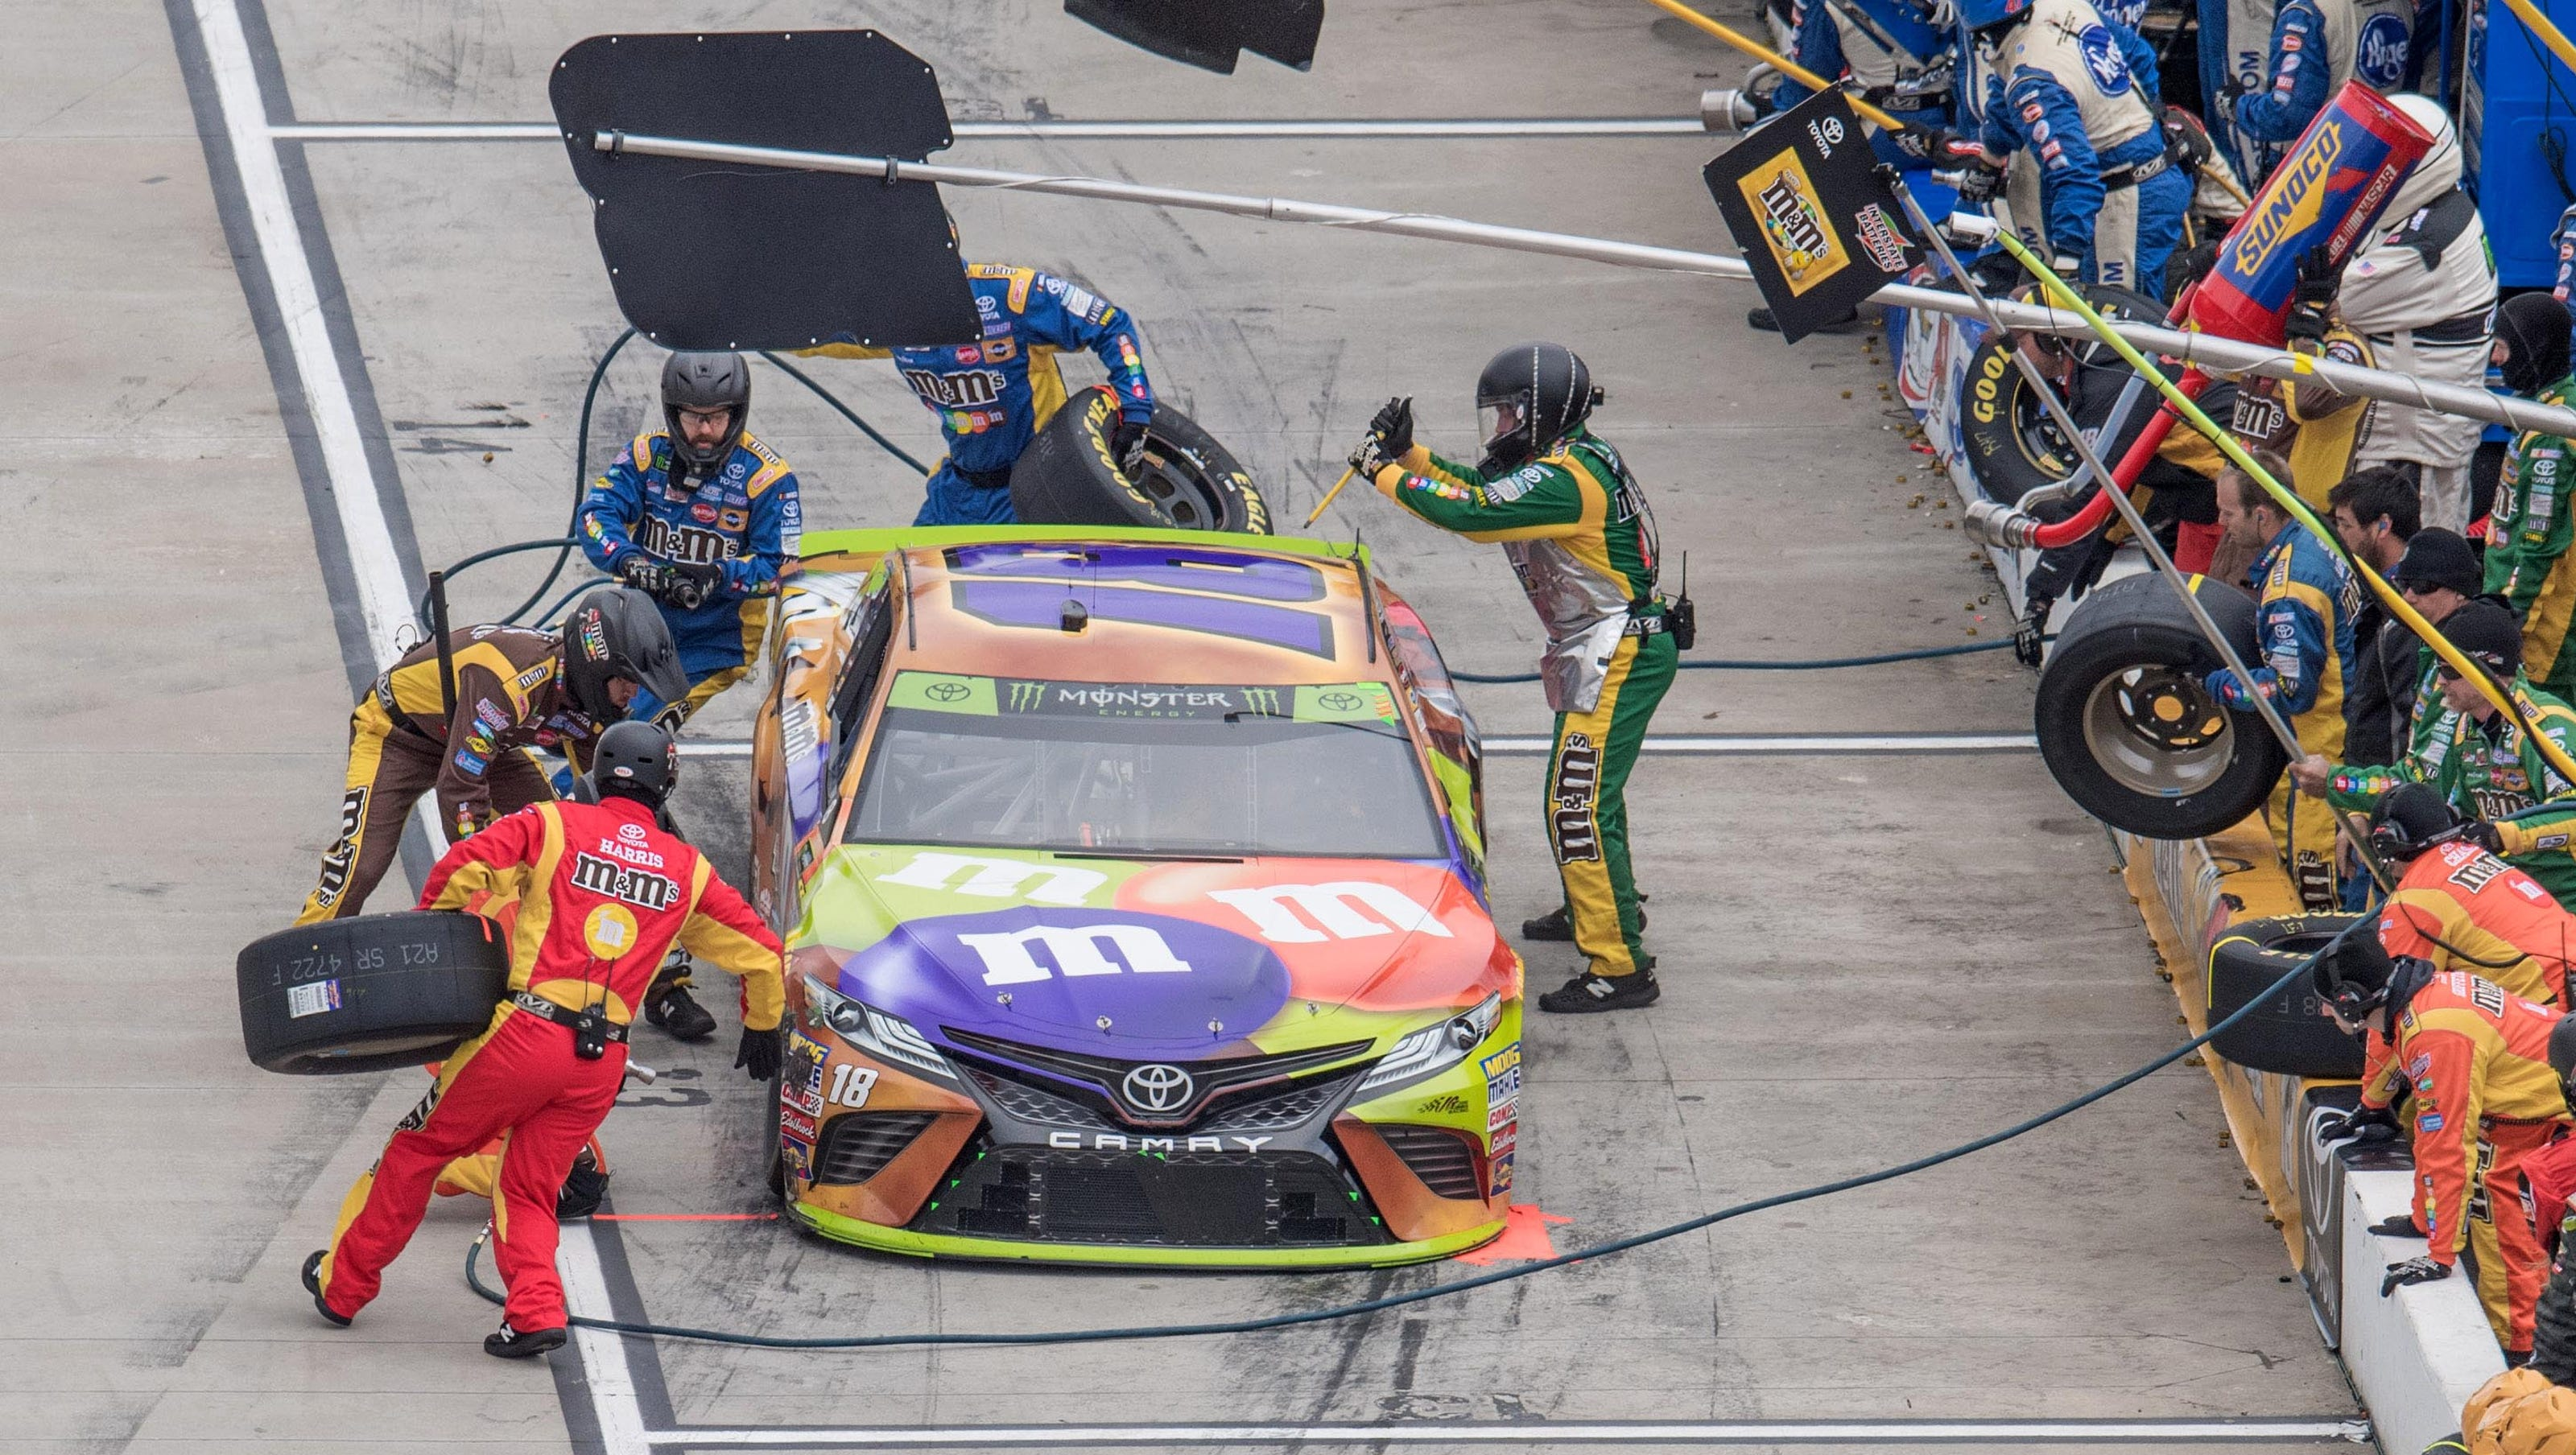 Nascar S New Pit Crew Rules Will Test Speed Athleticism Safety